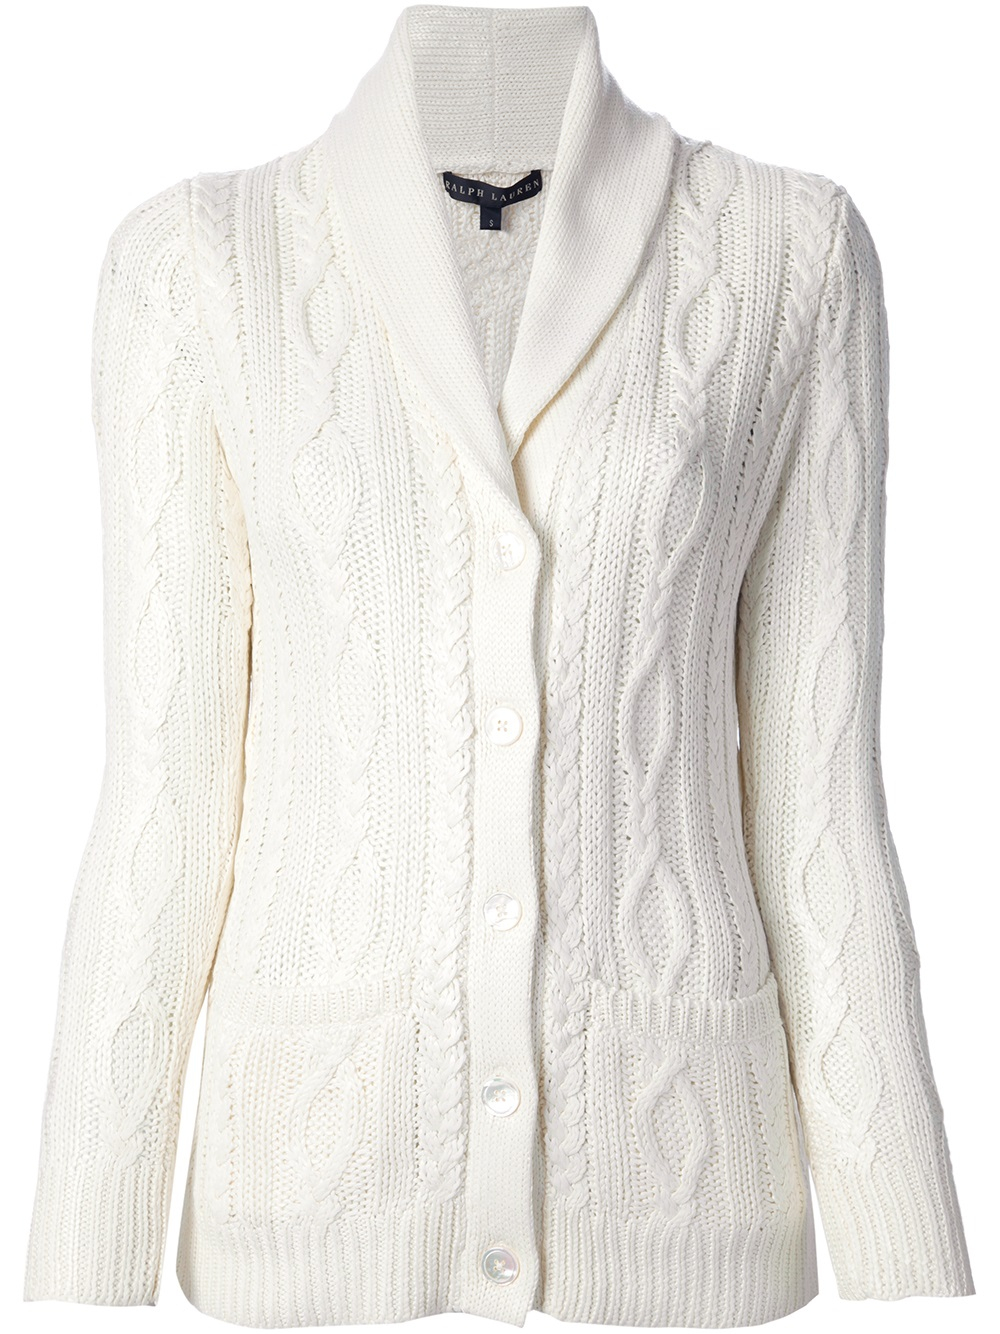 Ralph lauren black label Cable Knit Cardigan in White | Lyst